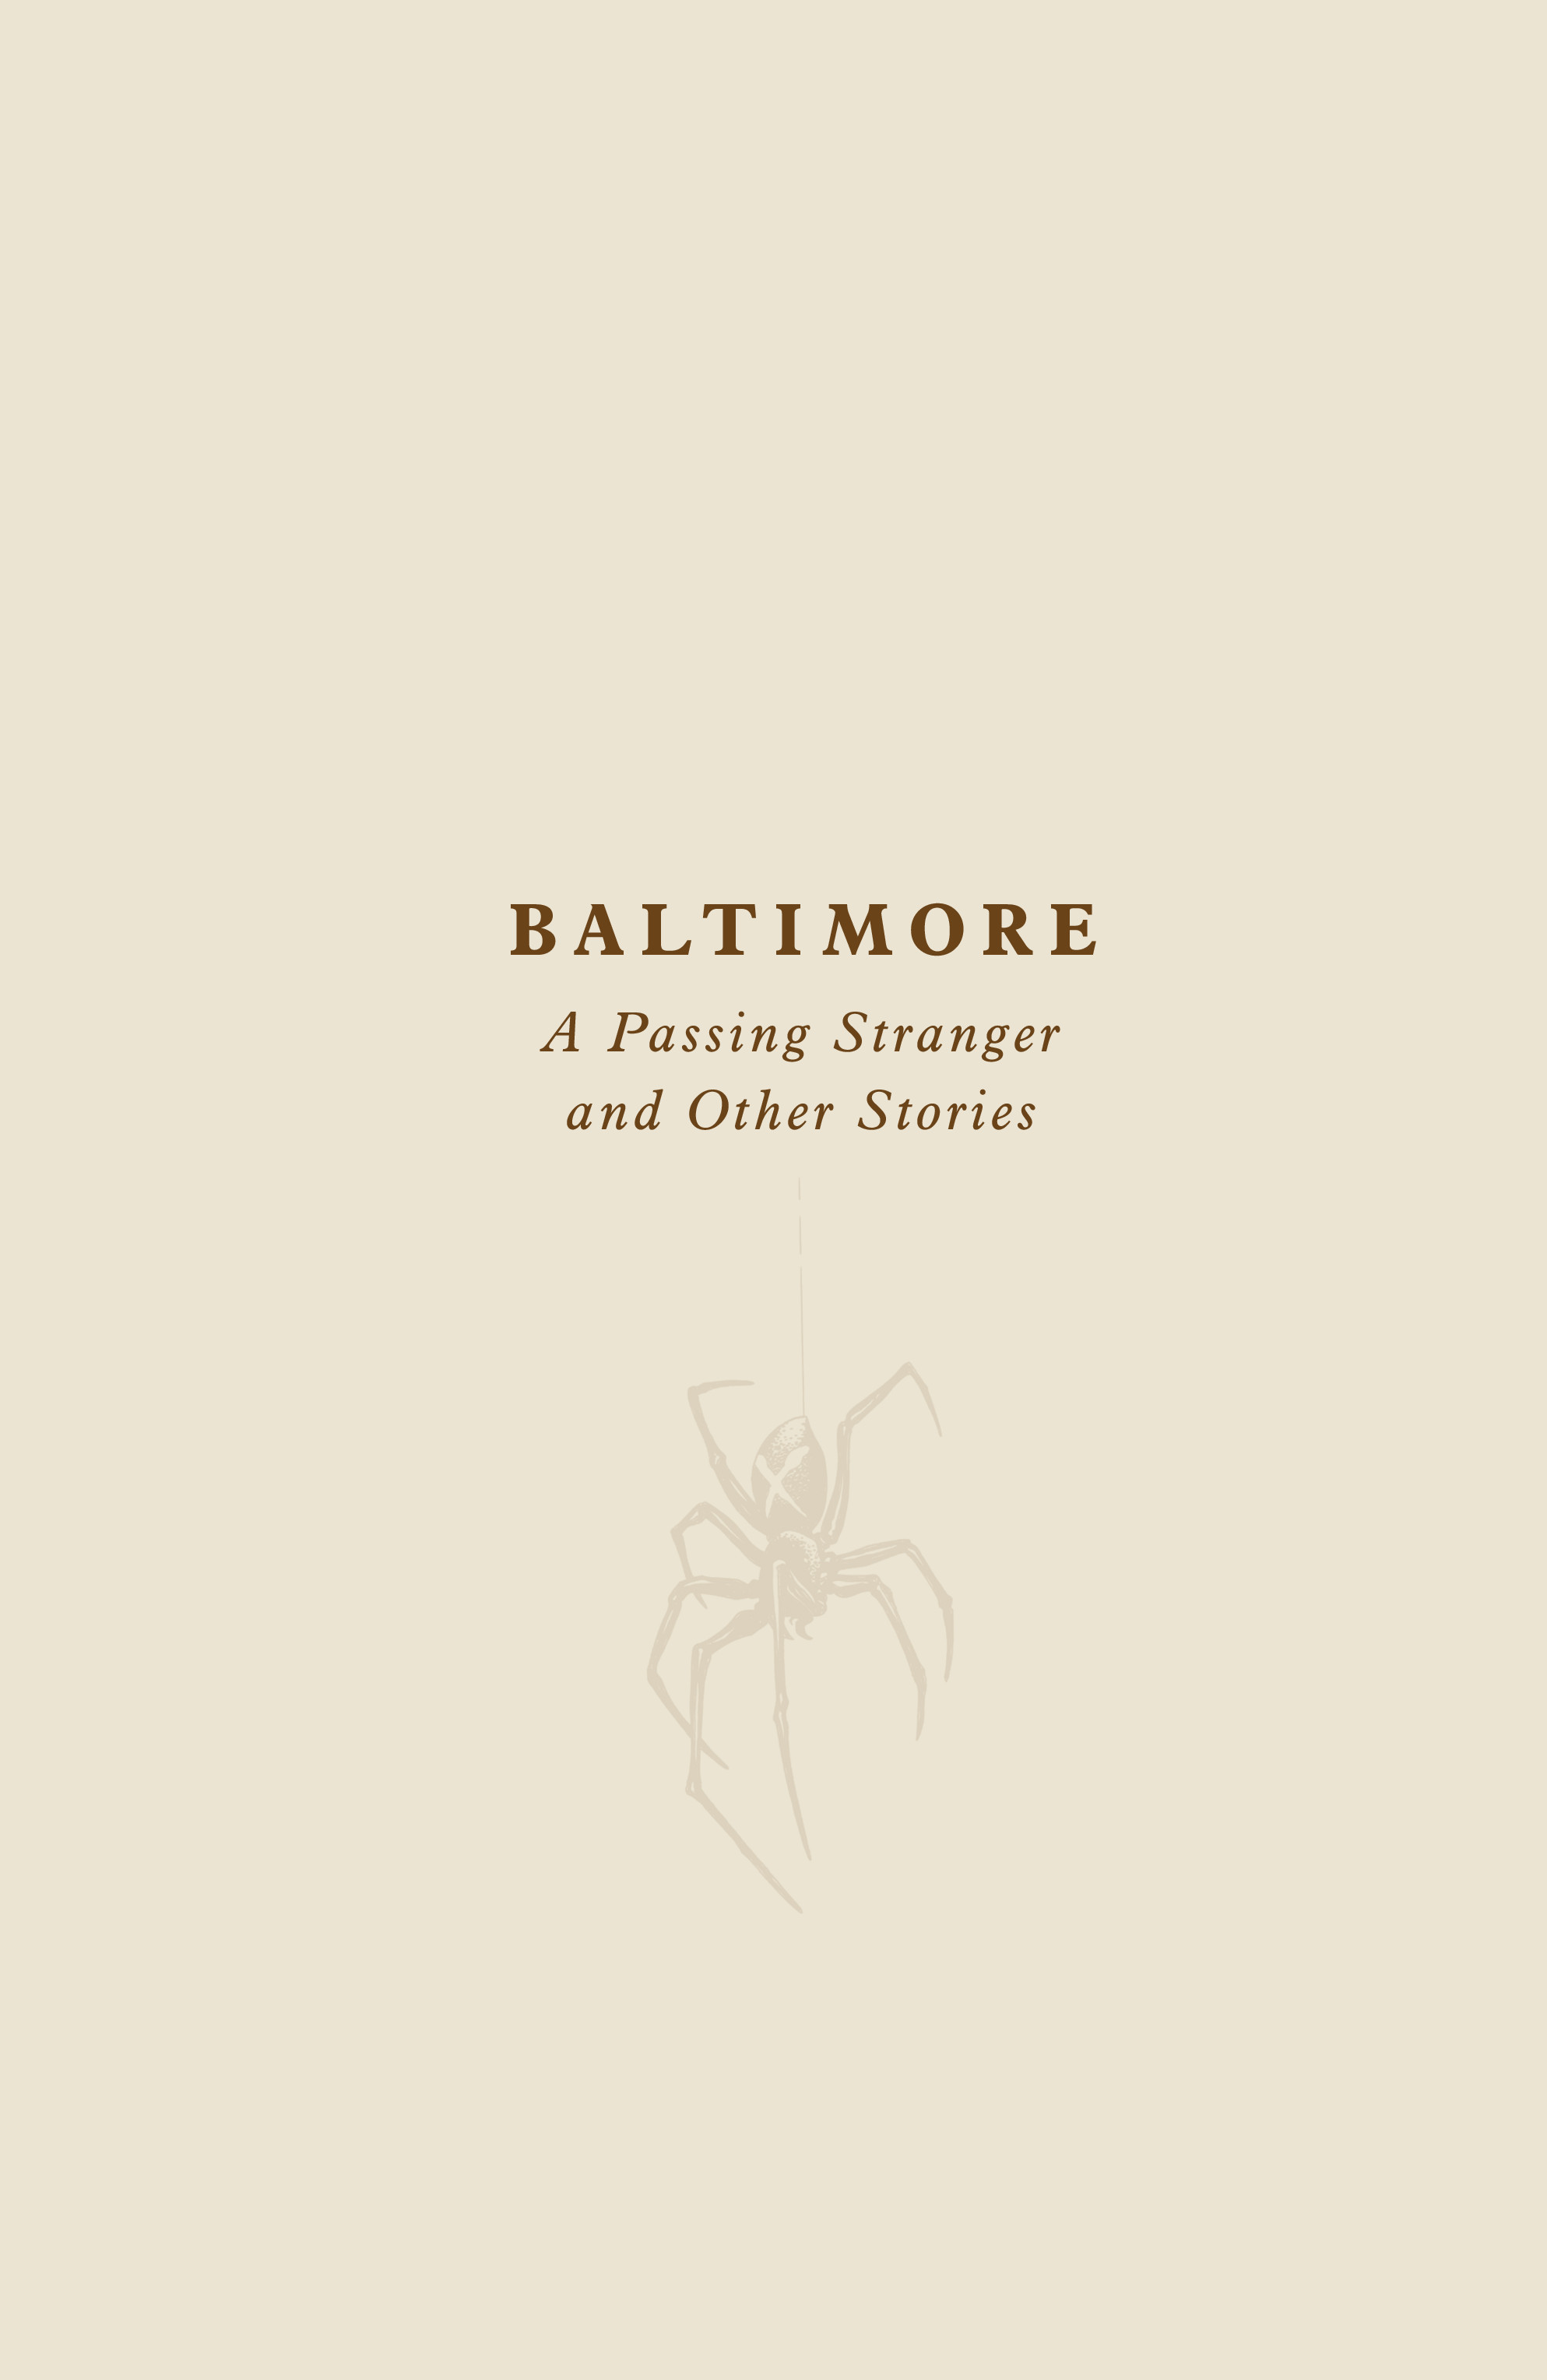 Read online Baltimore Volume 3: A Passing Stranger and Other Stories comic -  Issue # Full - 3